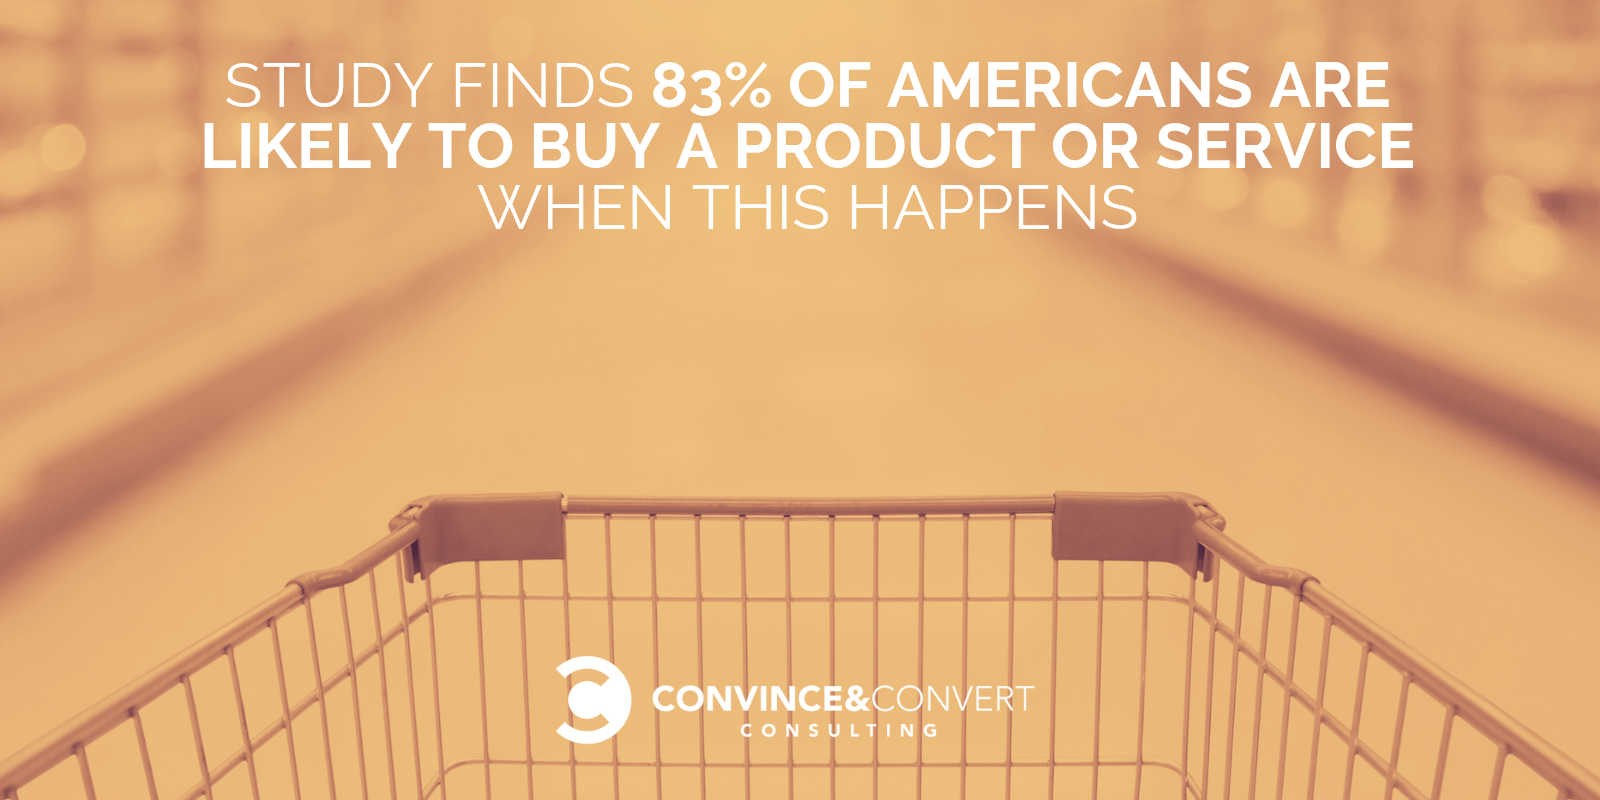 Study Finds 83% of Americans Are Likely to Buy a Product or Service When This Happens